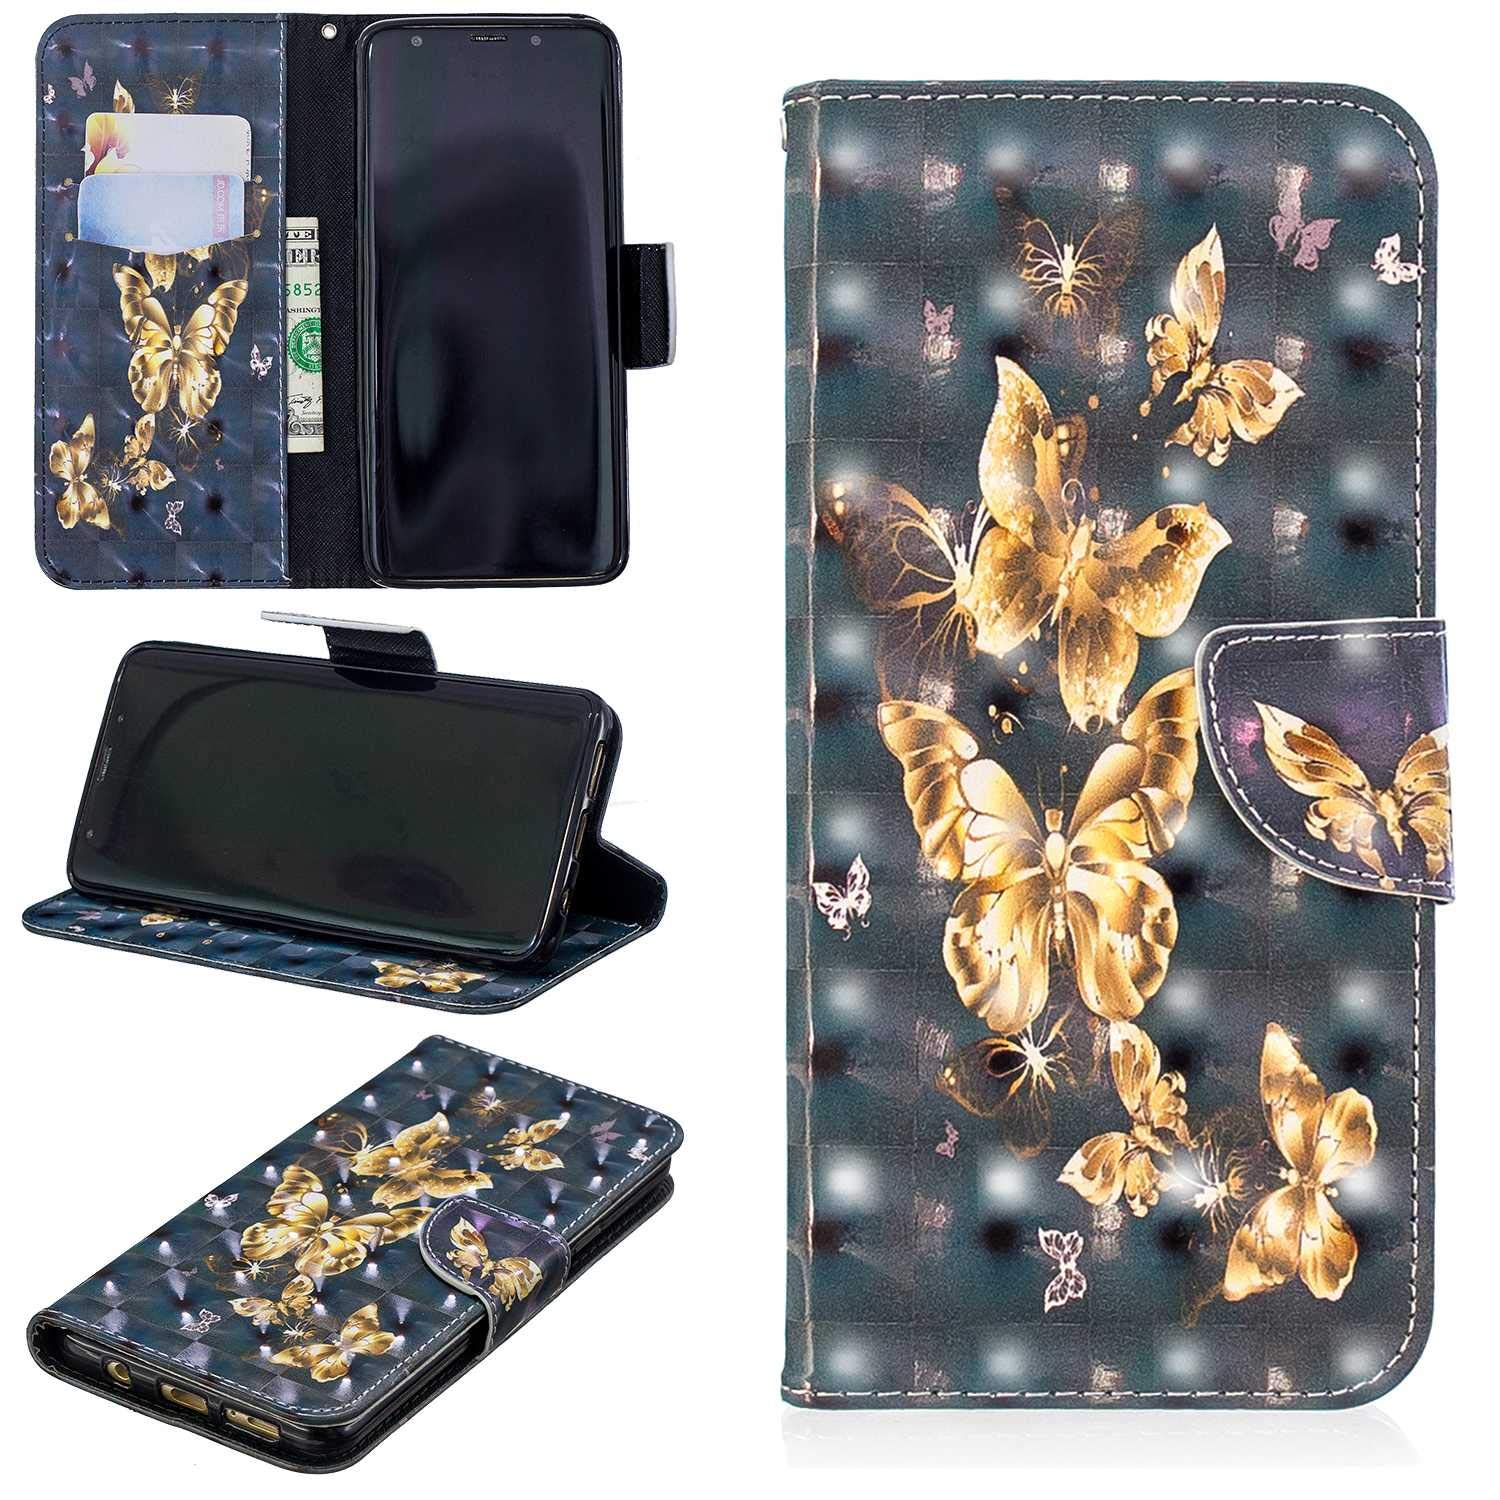 CUSKING Galaxy S9 Plus Case, Premium 3D Design Wallet Case Stand Flip Case with Card Holders and Magnetic Closure, Multi-Functional Shockproof Case for Samsung Galaxy S9 Plus - Golden Butterfly